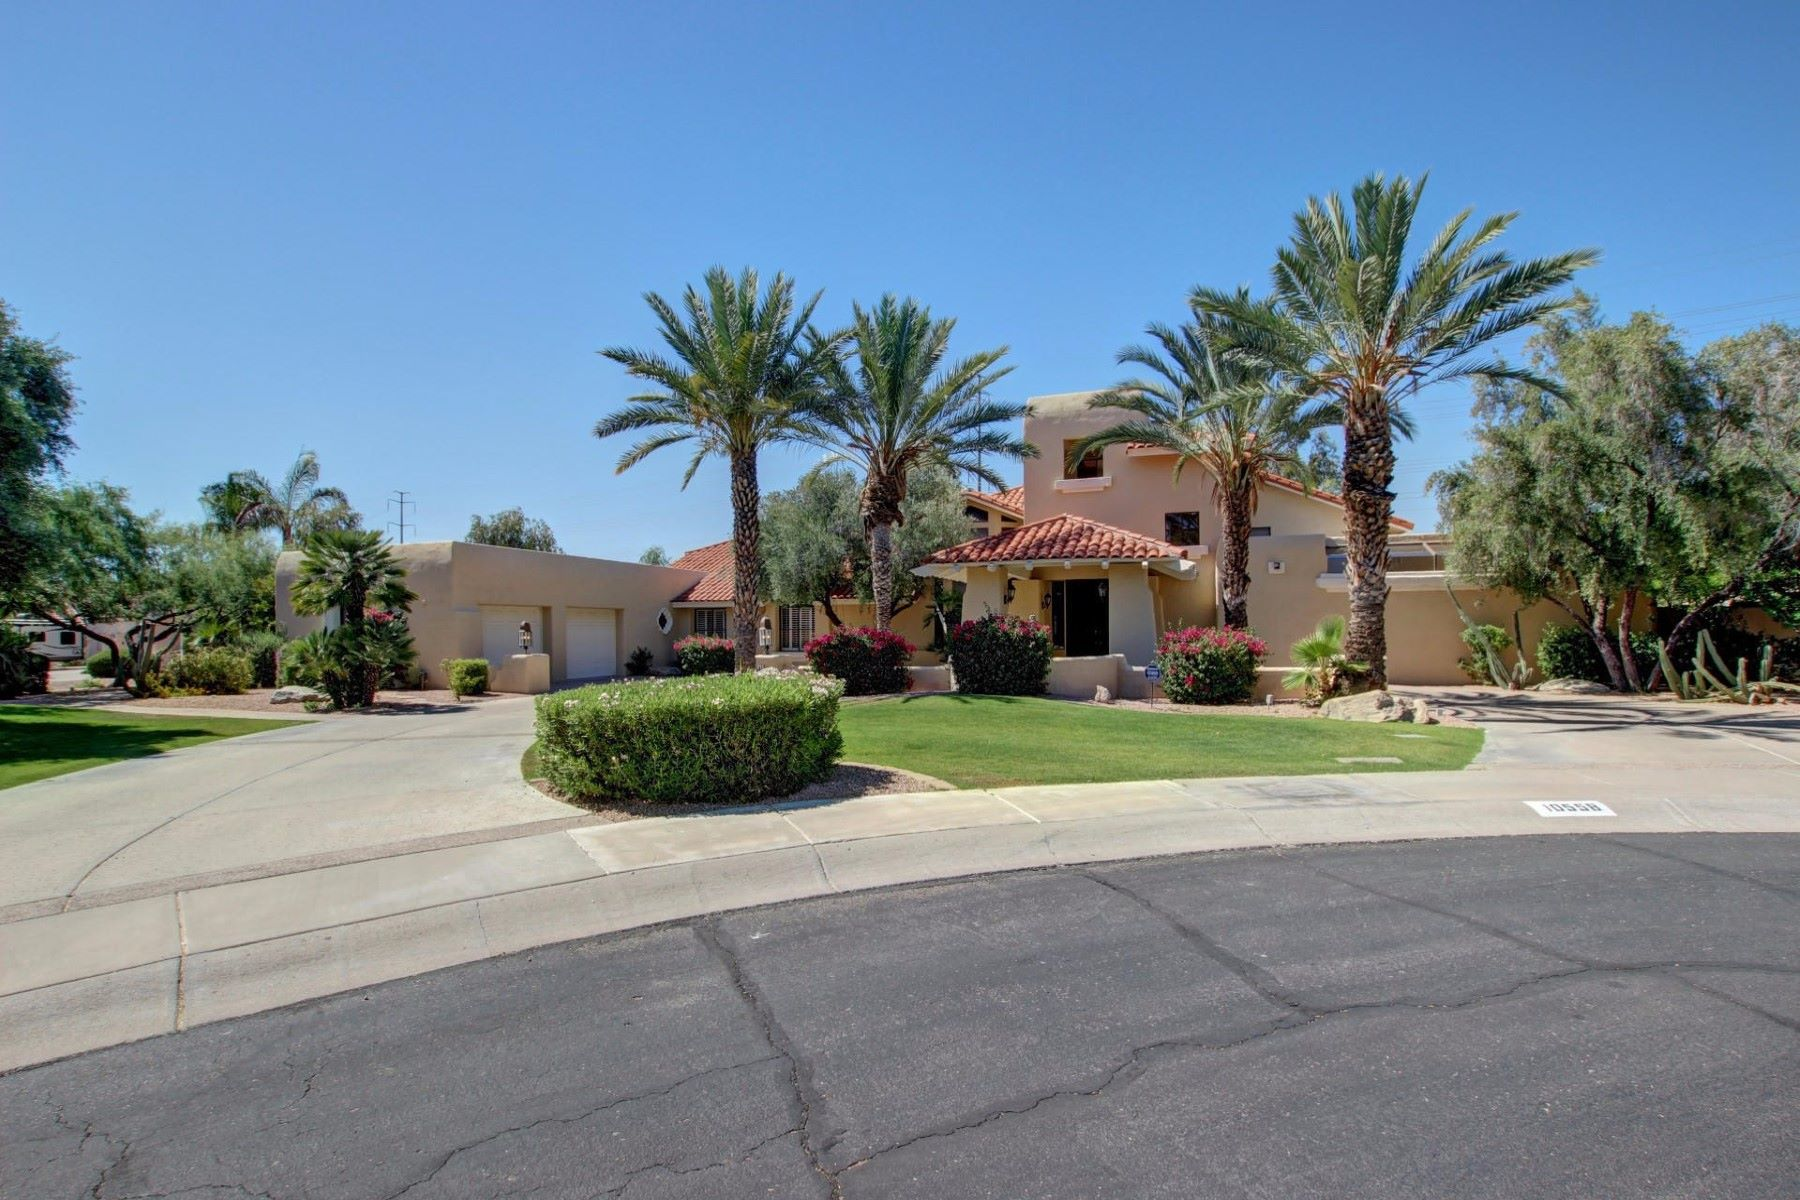 단독 가정 주택 용 매매 에 Outstanding Home in the Gated Community of The Estates at Scottsdale Ranch 10558 N 106th Pl Scottsdale, 아리조나, 85258 미국